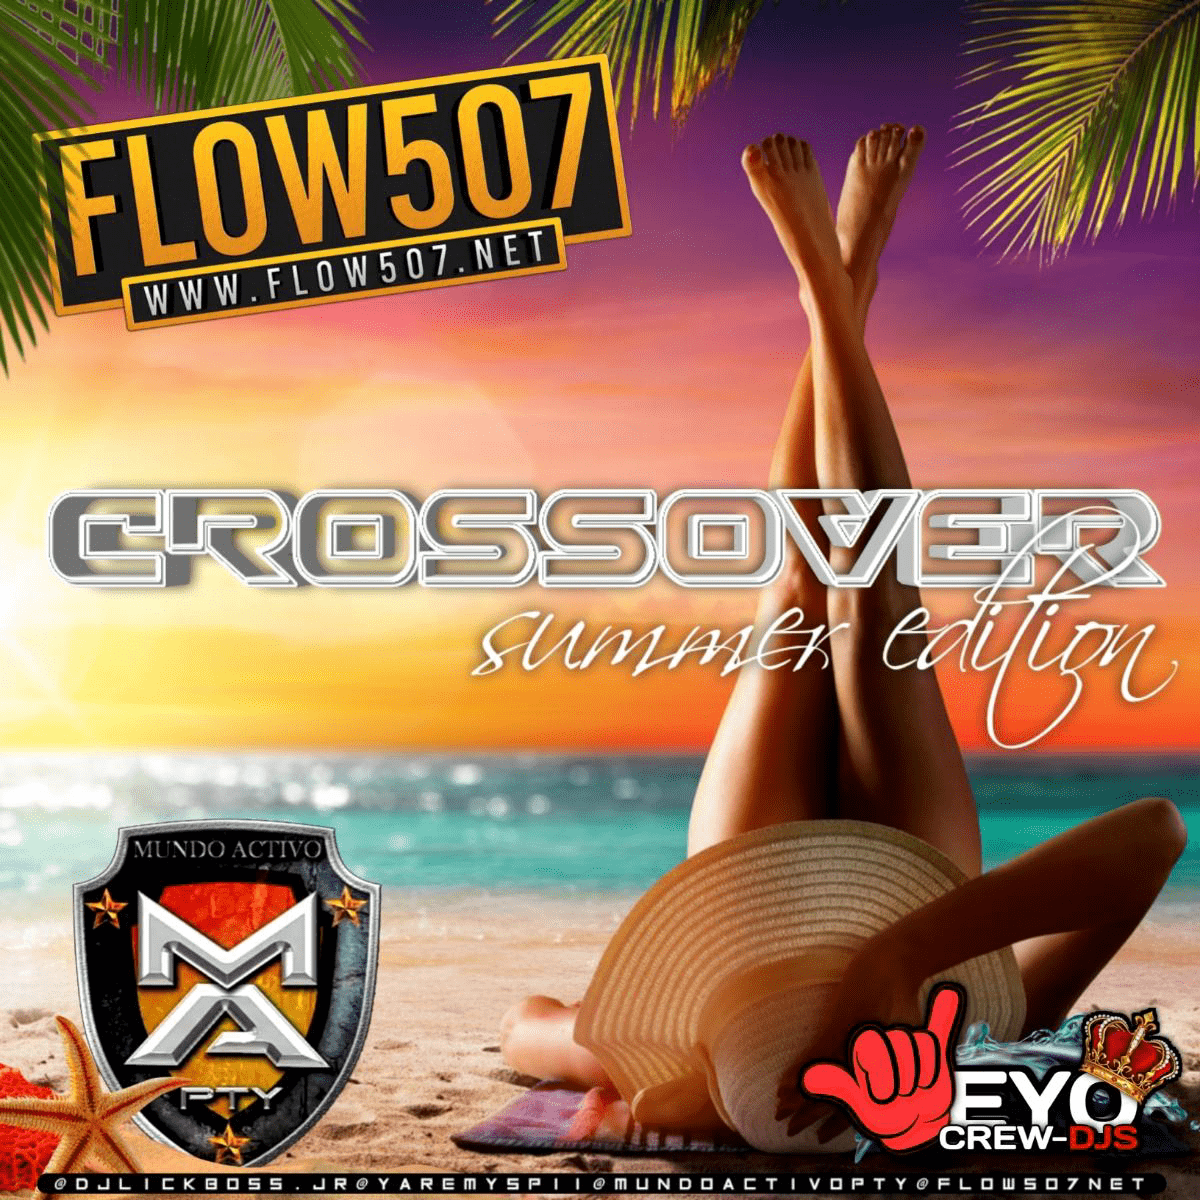 @DJLICKBOSS.JR - CROSSOVER SUMMER EDITION BY MUNDO ACTIVO